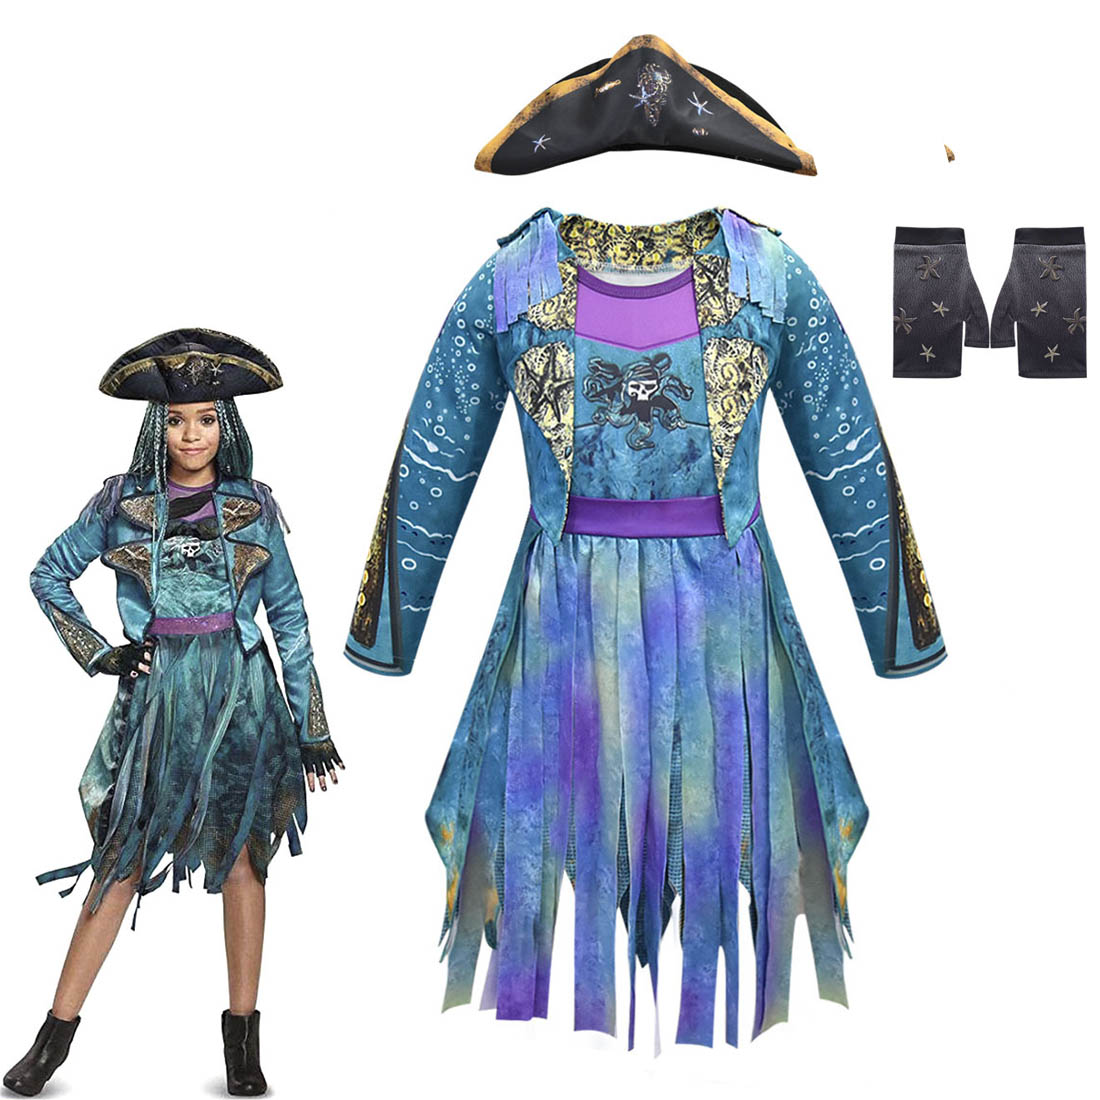 Halloween Costume For Kids Descendants 3 Audrey Evie Cosplay Costumes Girls Funny Party Carnival Clothing Fantasia Jumpsuits